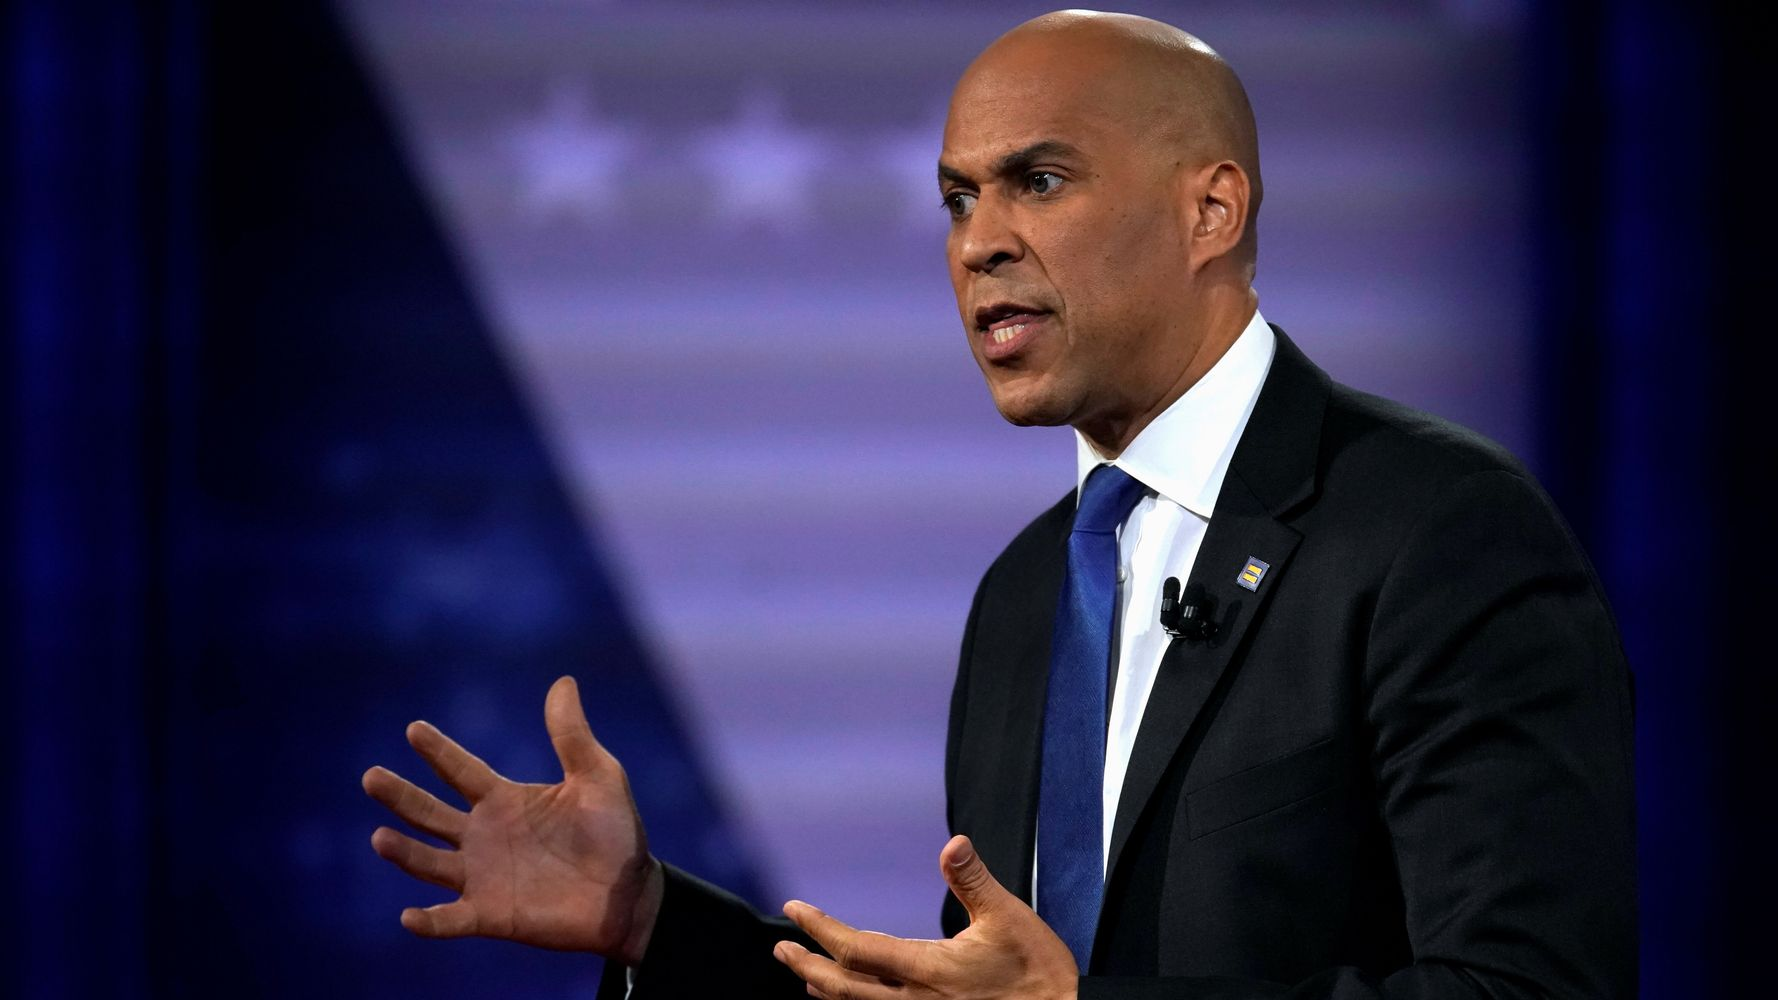 Westlake Legal Group 5dd60f072100006d7134d96e Biden Fumbled Big-Time After Booker Called Him Out On Race